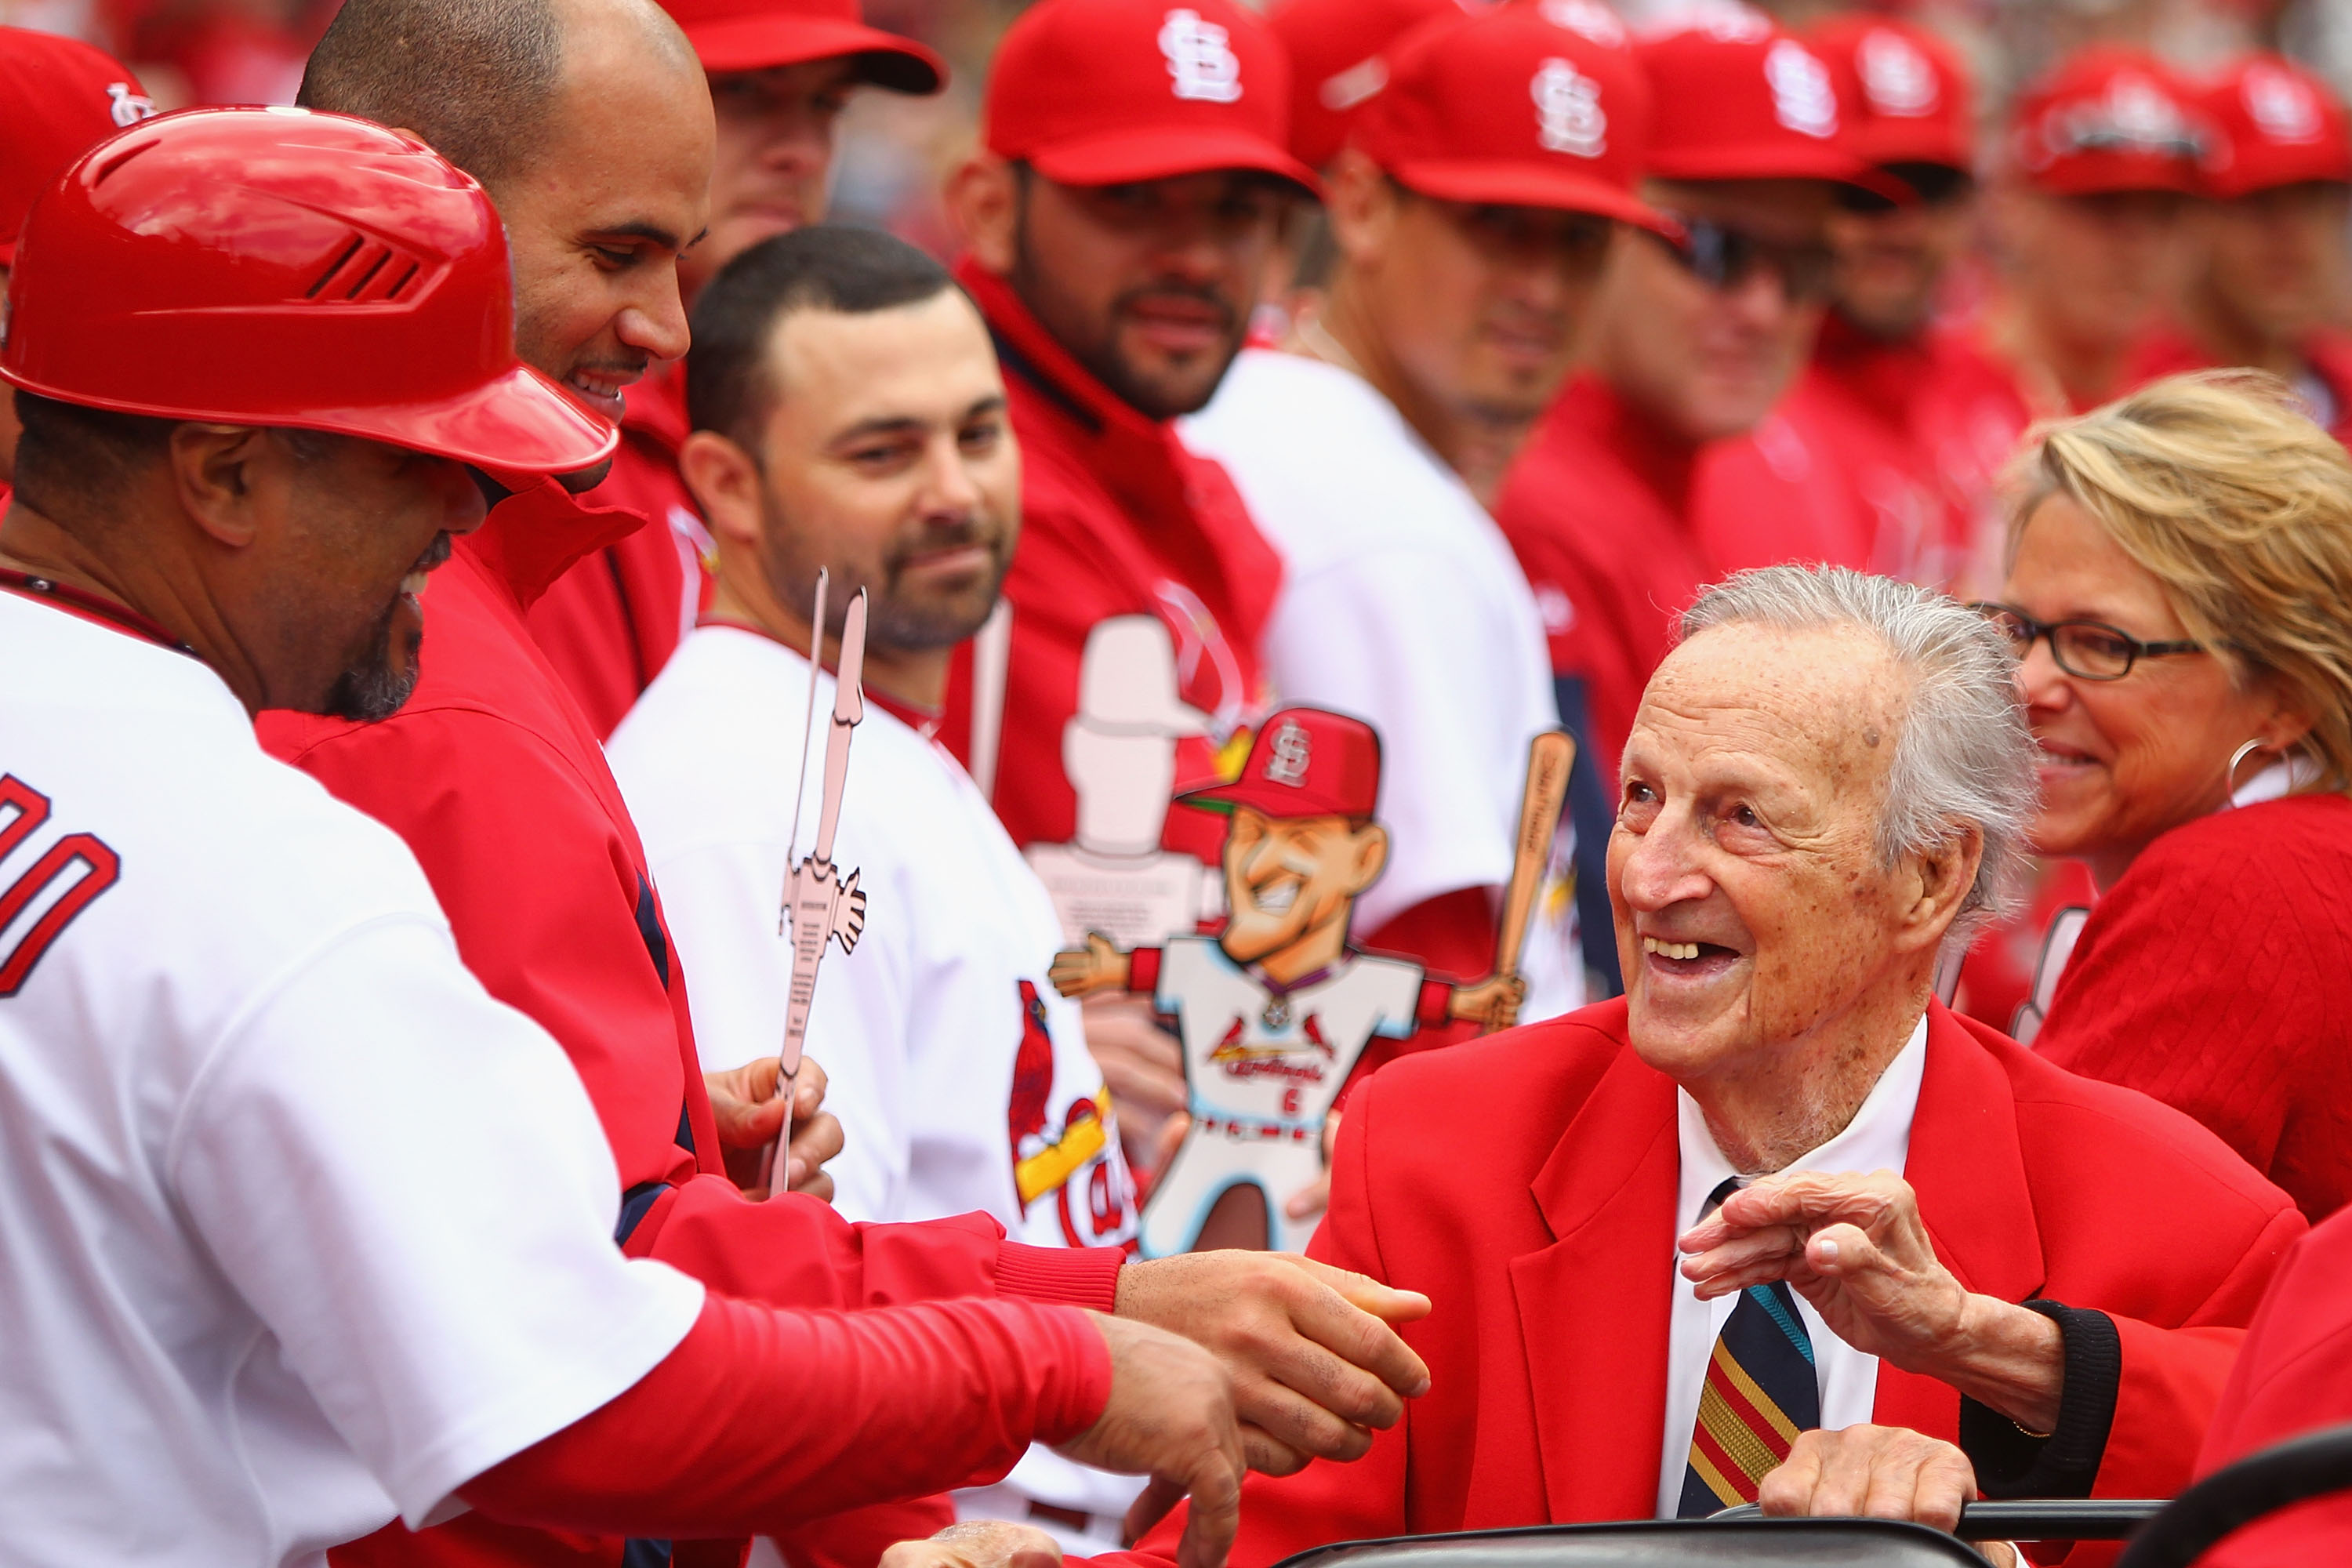 ST. LOUIS - OCTOBER 2: Former St. Louis Cardinals player Stan Musial greets members of the St. Louis Cardinals in between innings against the Colorado Rockies at Busch Stadium on October 2, 2010 in St. Louis, Missouri.  The Cardinals beat the Rockies 1-0